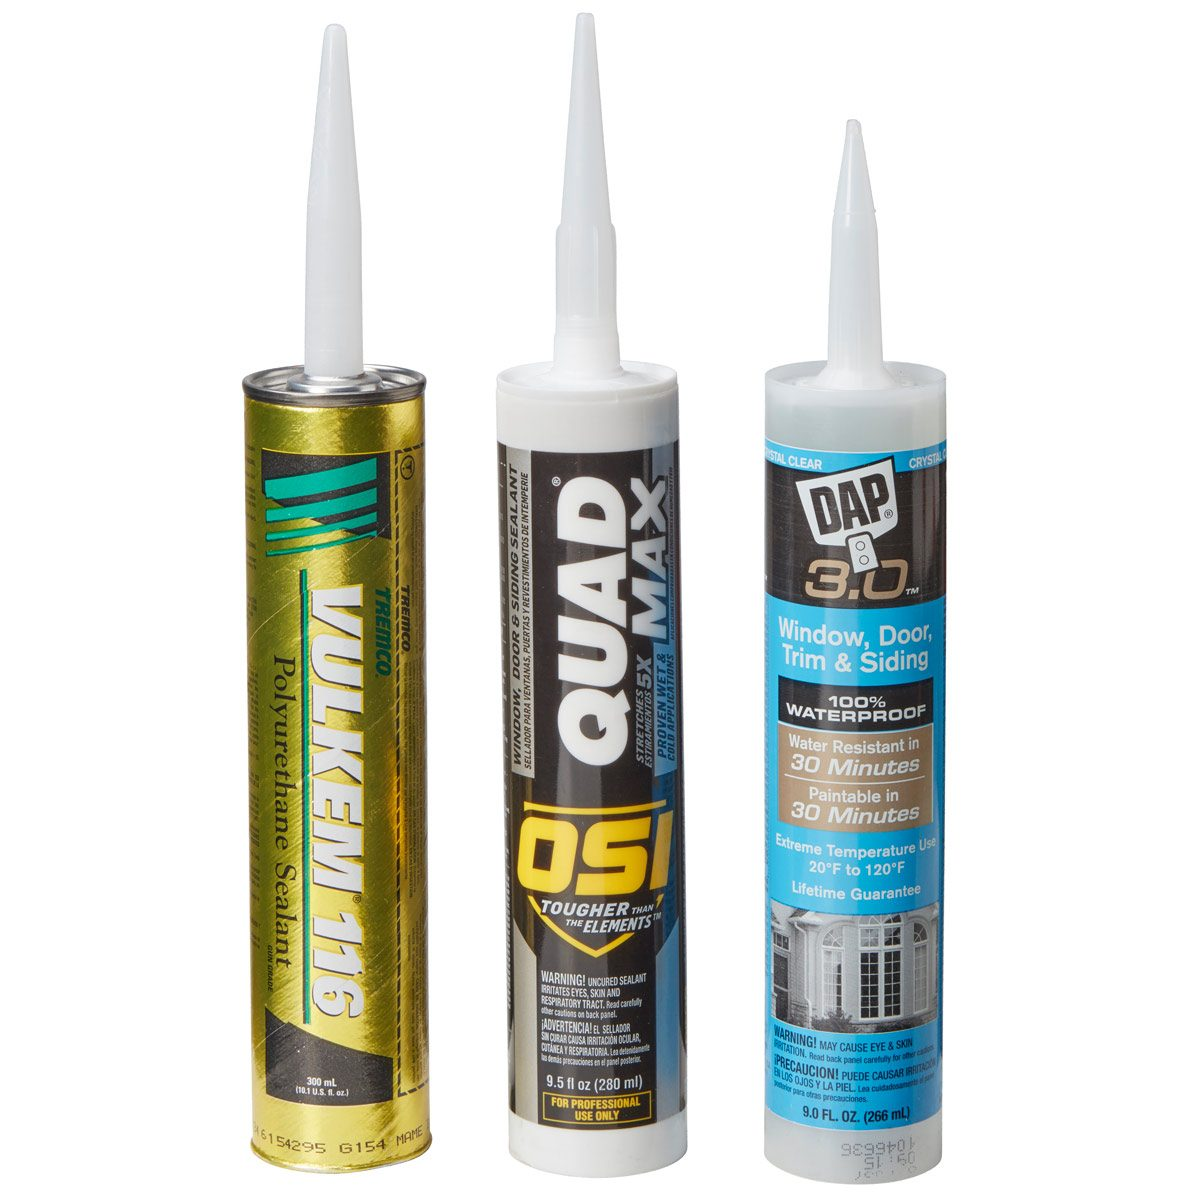 polyurethane and hybrid caulk